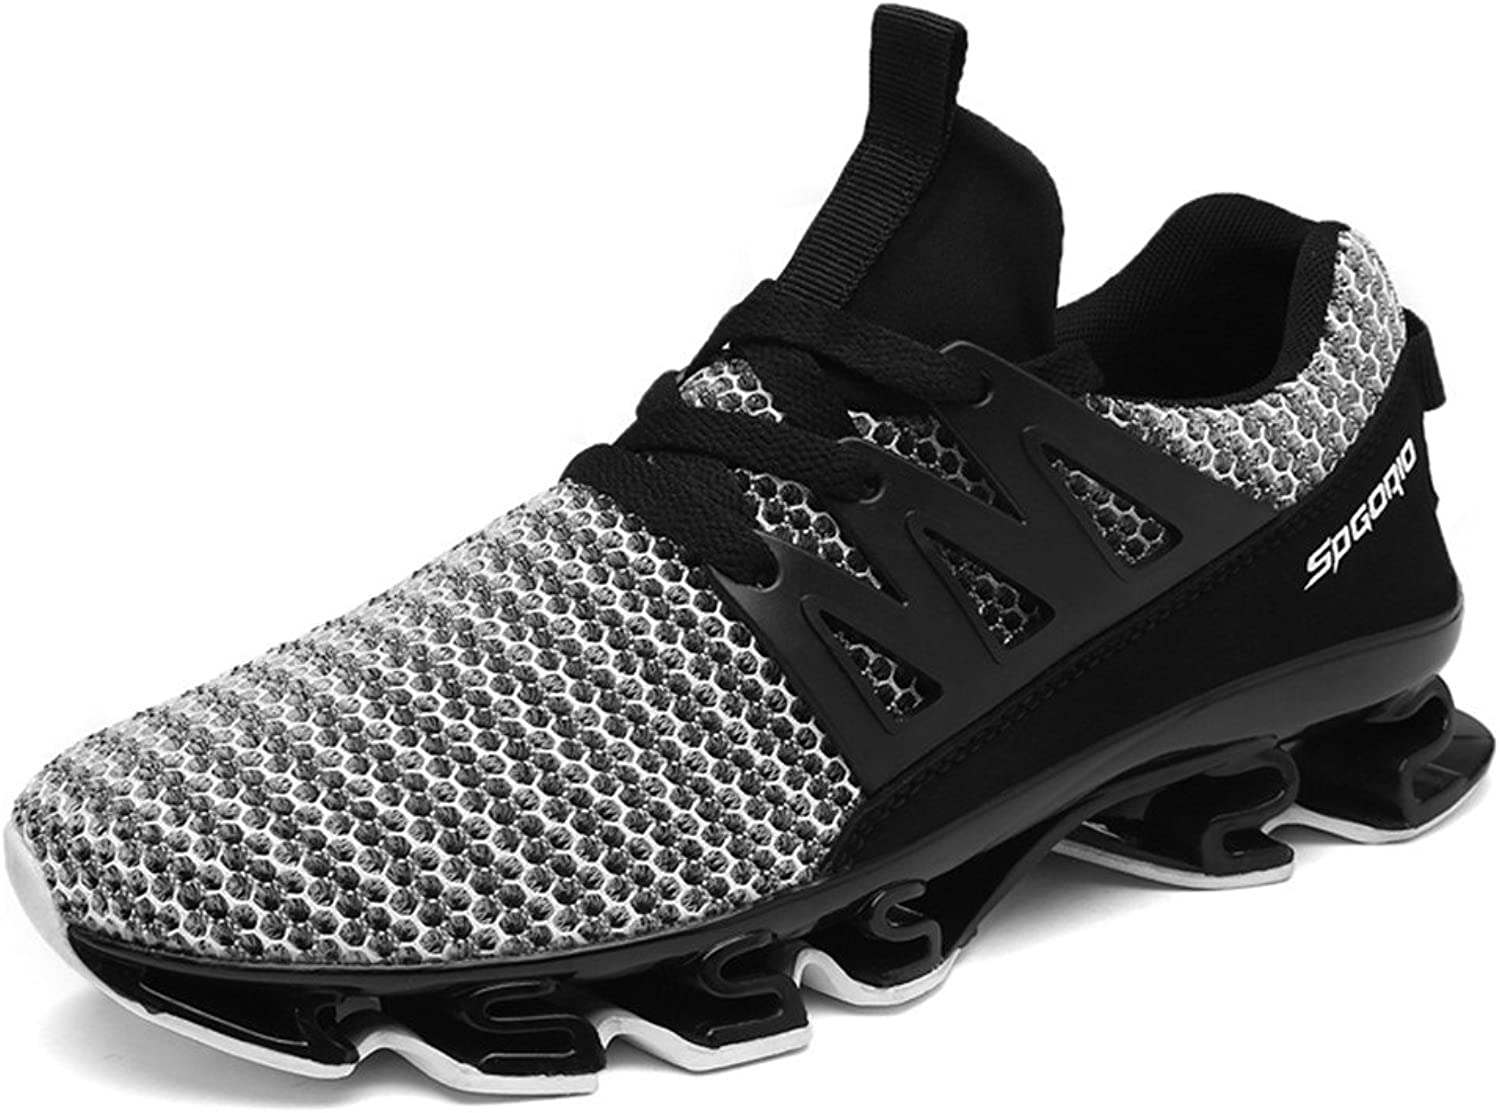 Wensom Men's Outdoor Sneakers Trail Running Hiking Jogging shoes Black